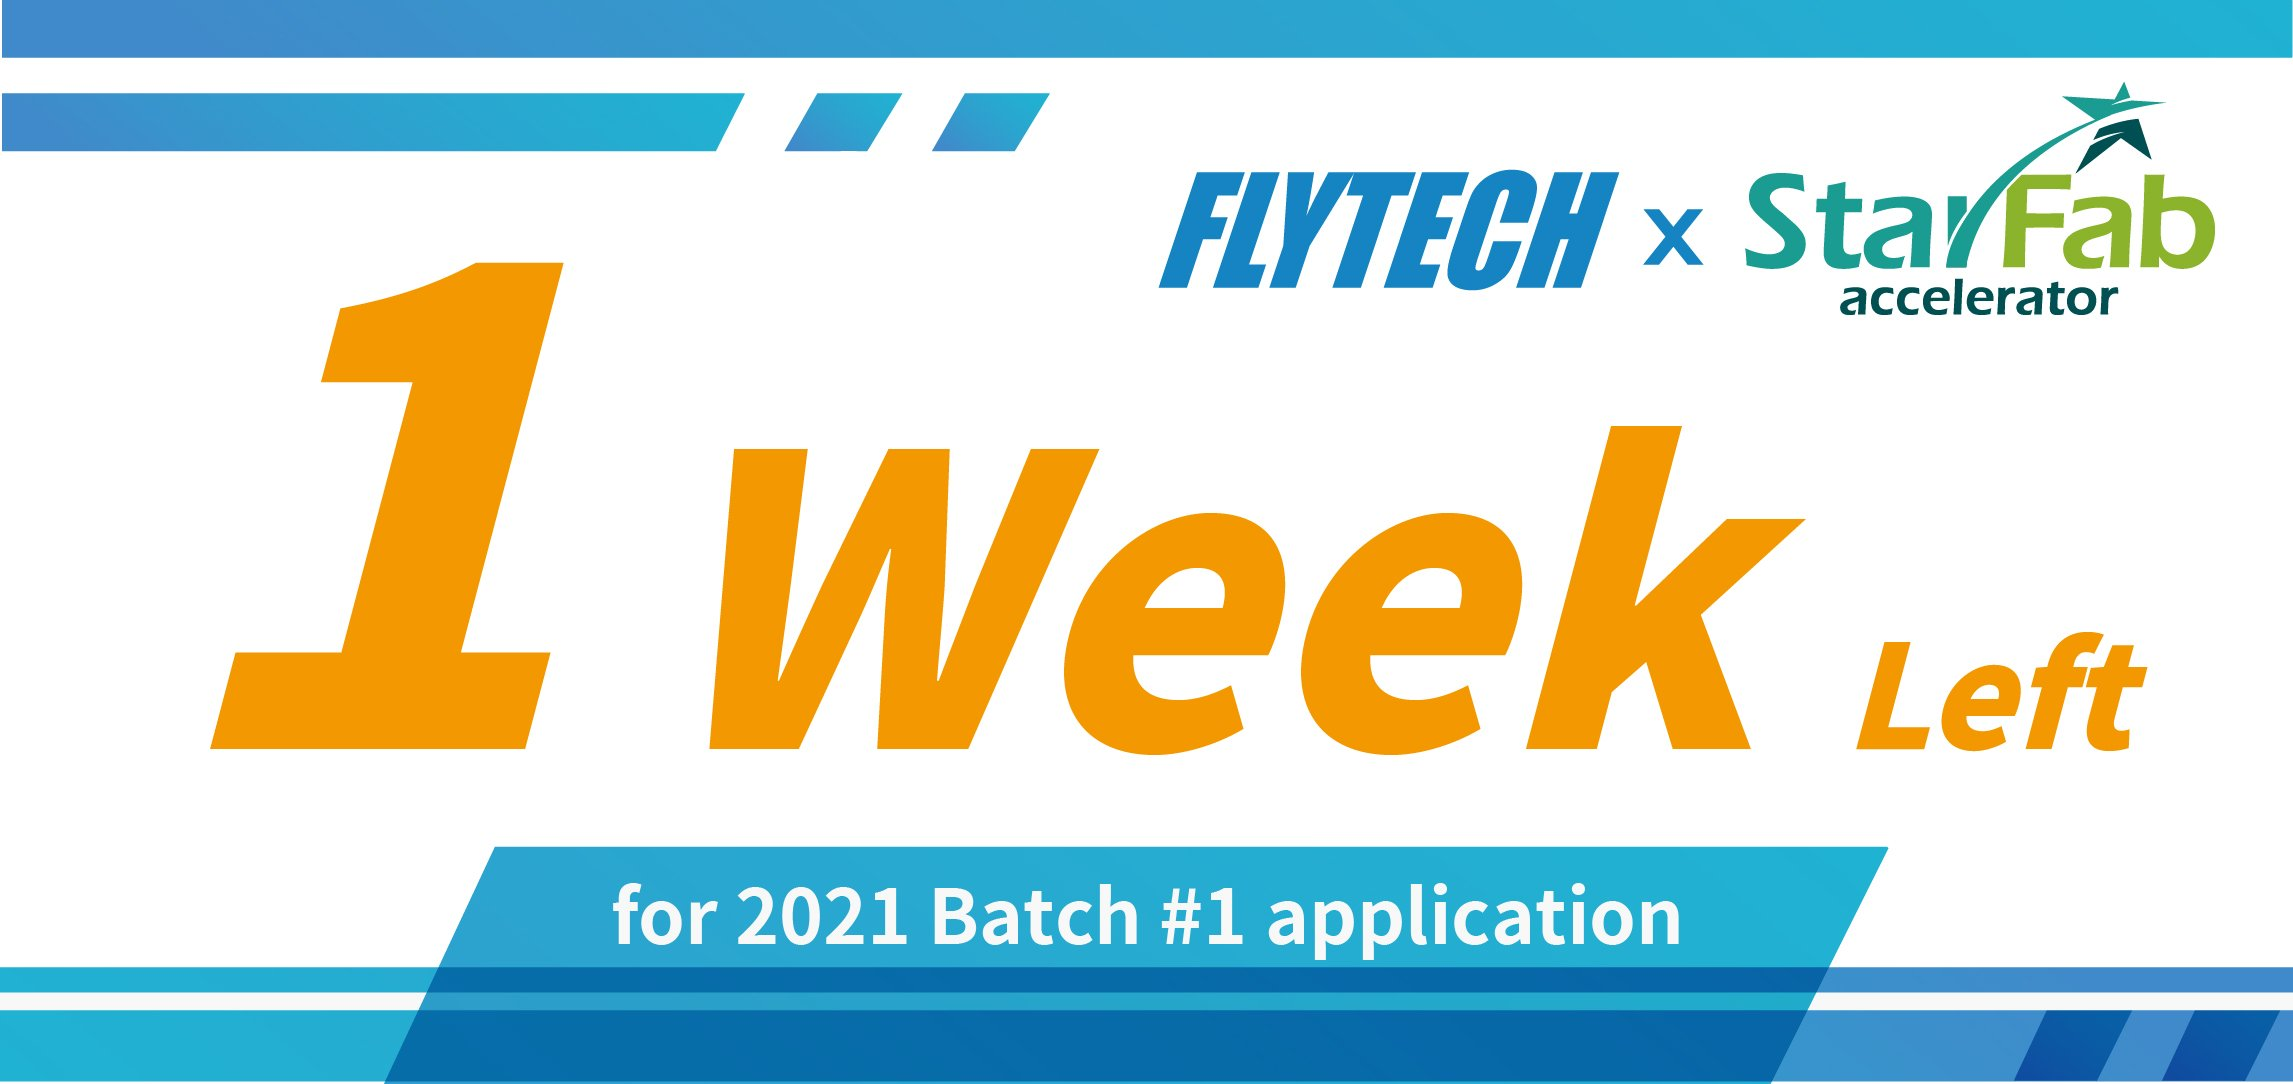 2021 Flytech x StarFab Accelerator is Calling for Applications until June 3